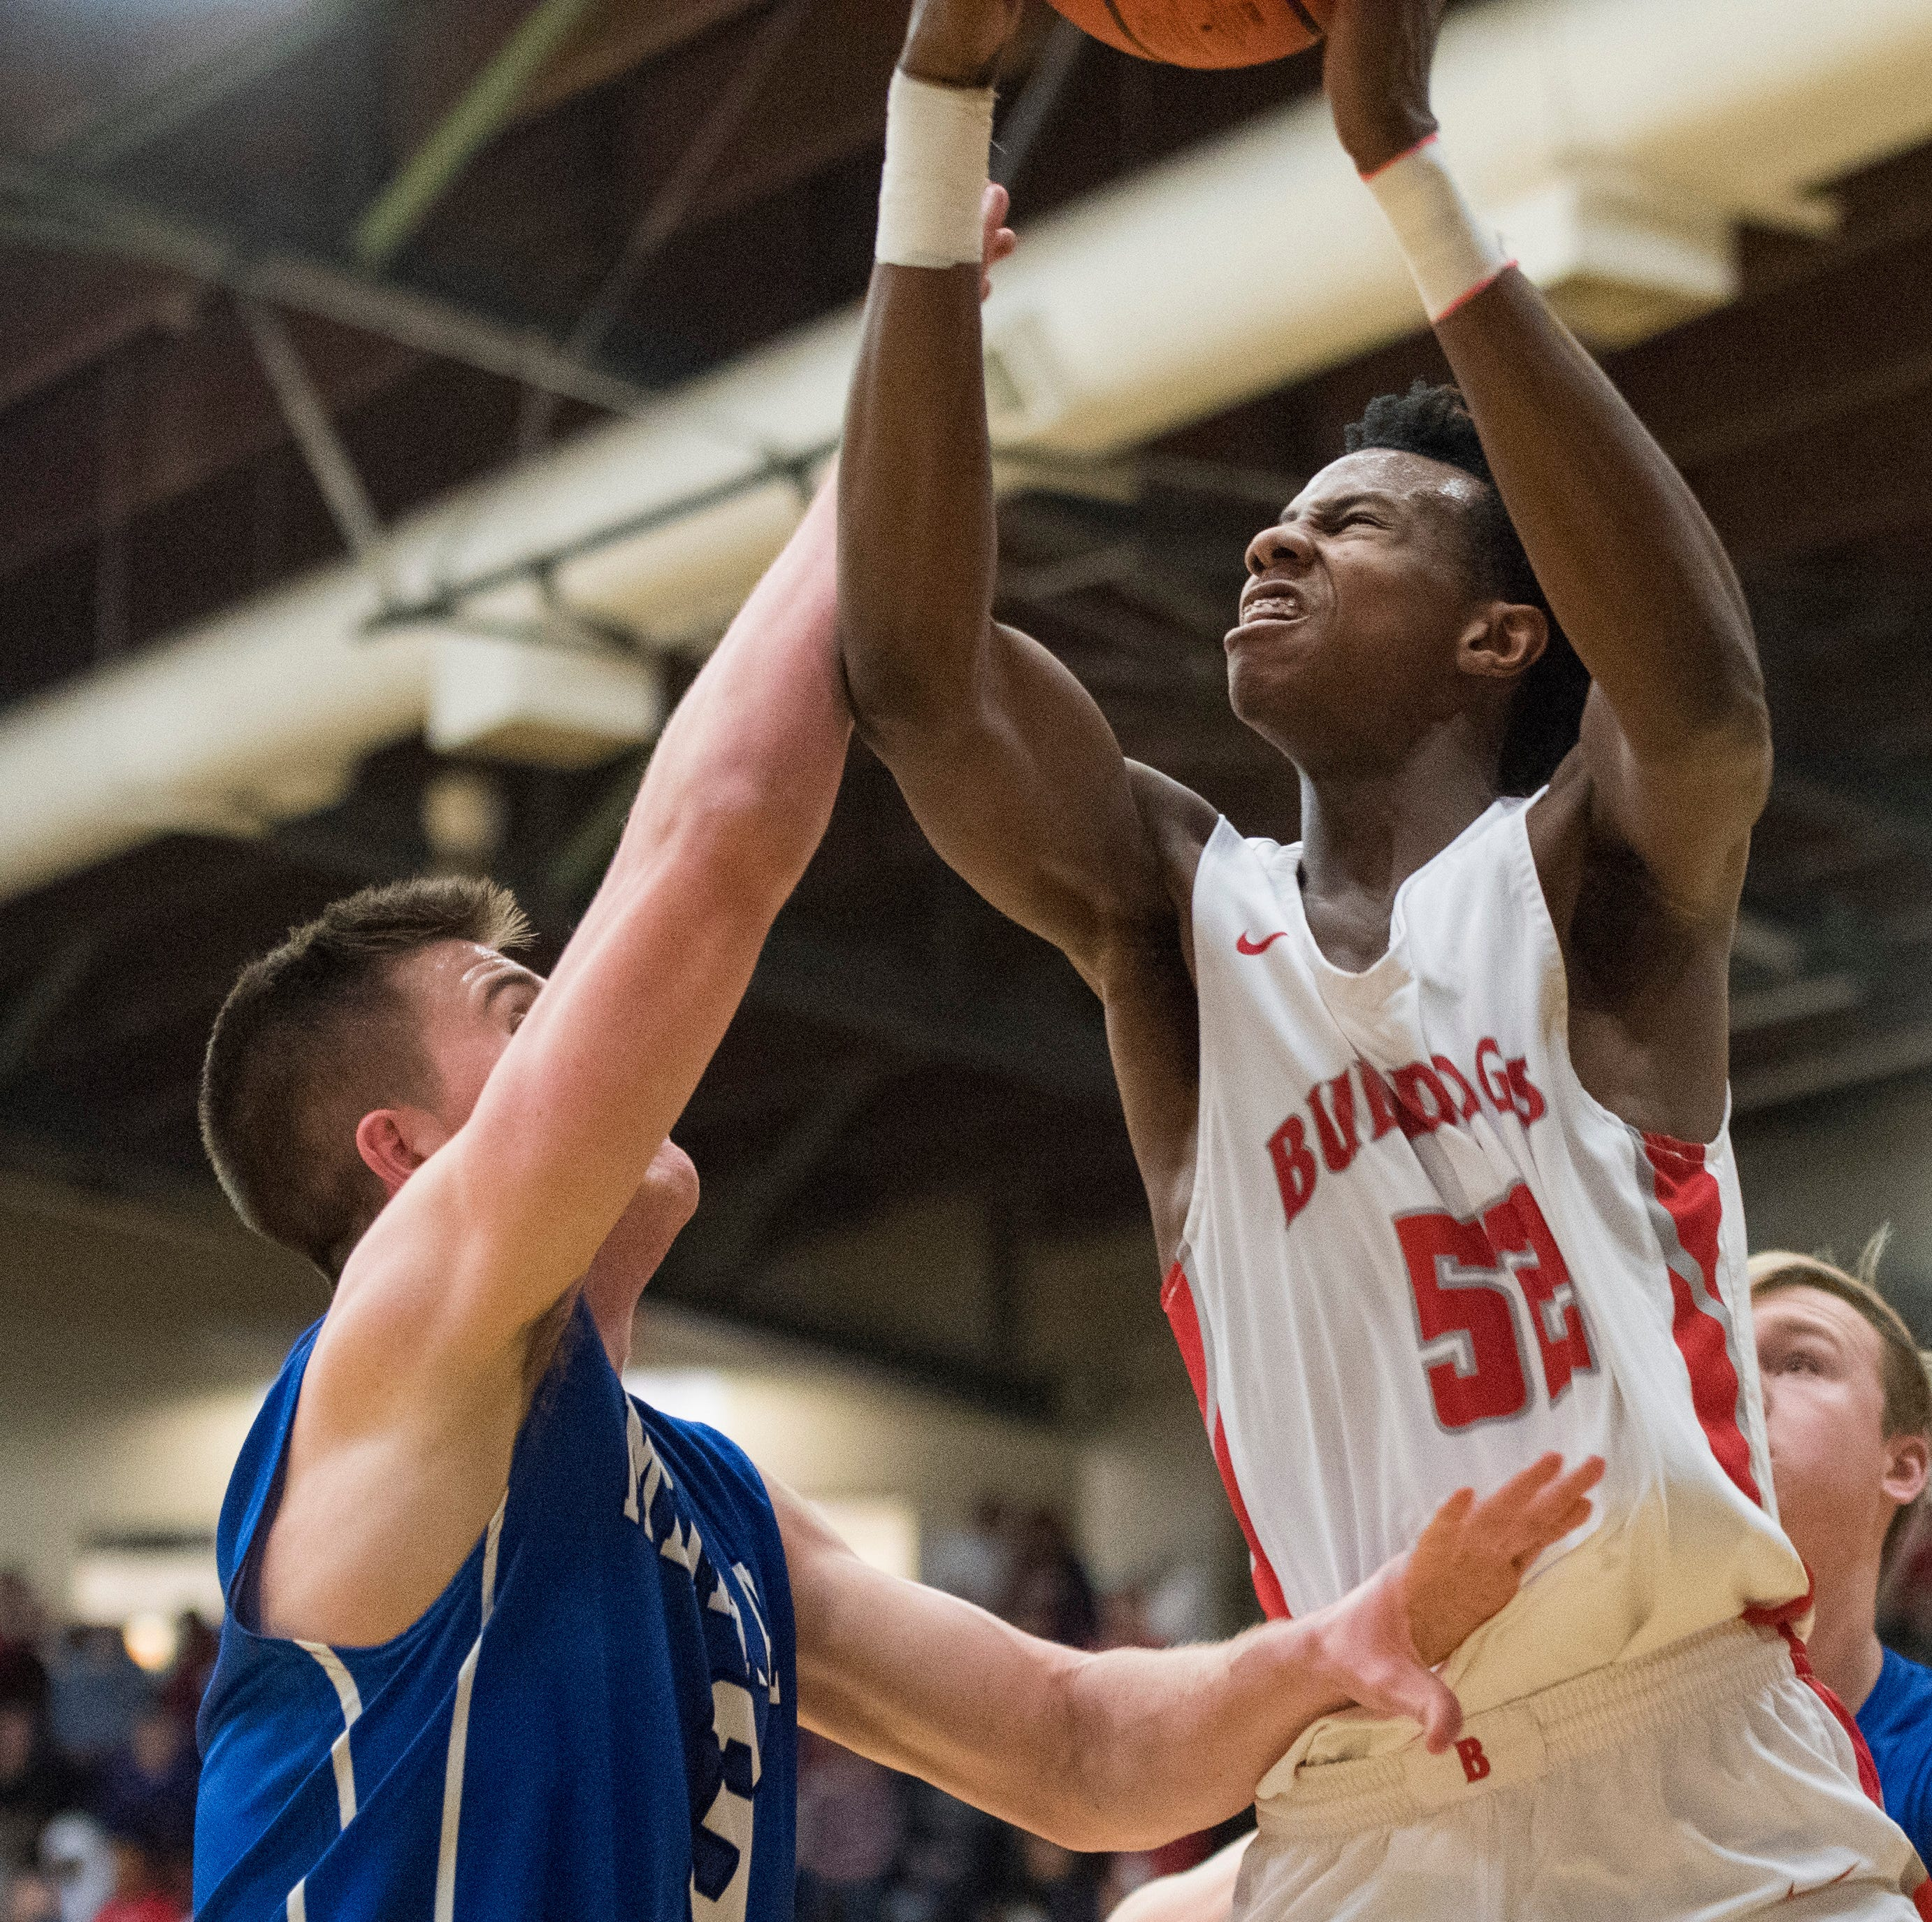 Kiyron Powell, Murray Becher named Indiana Junior All-Stars